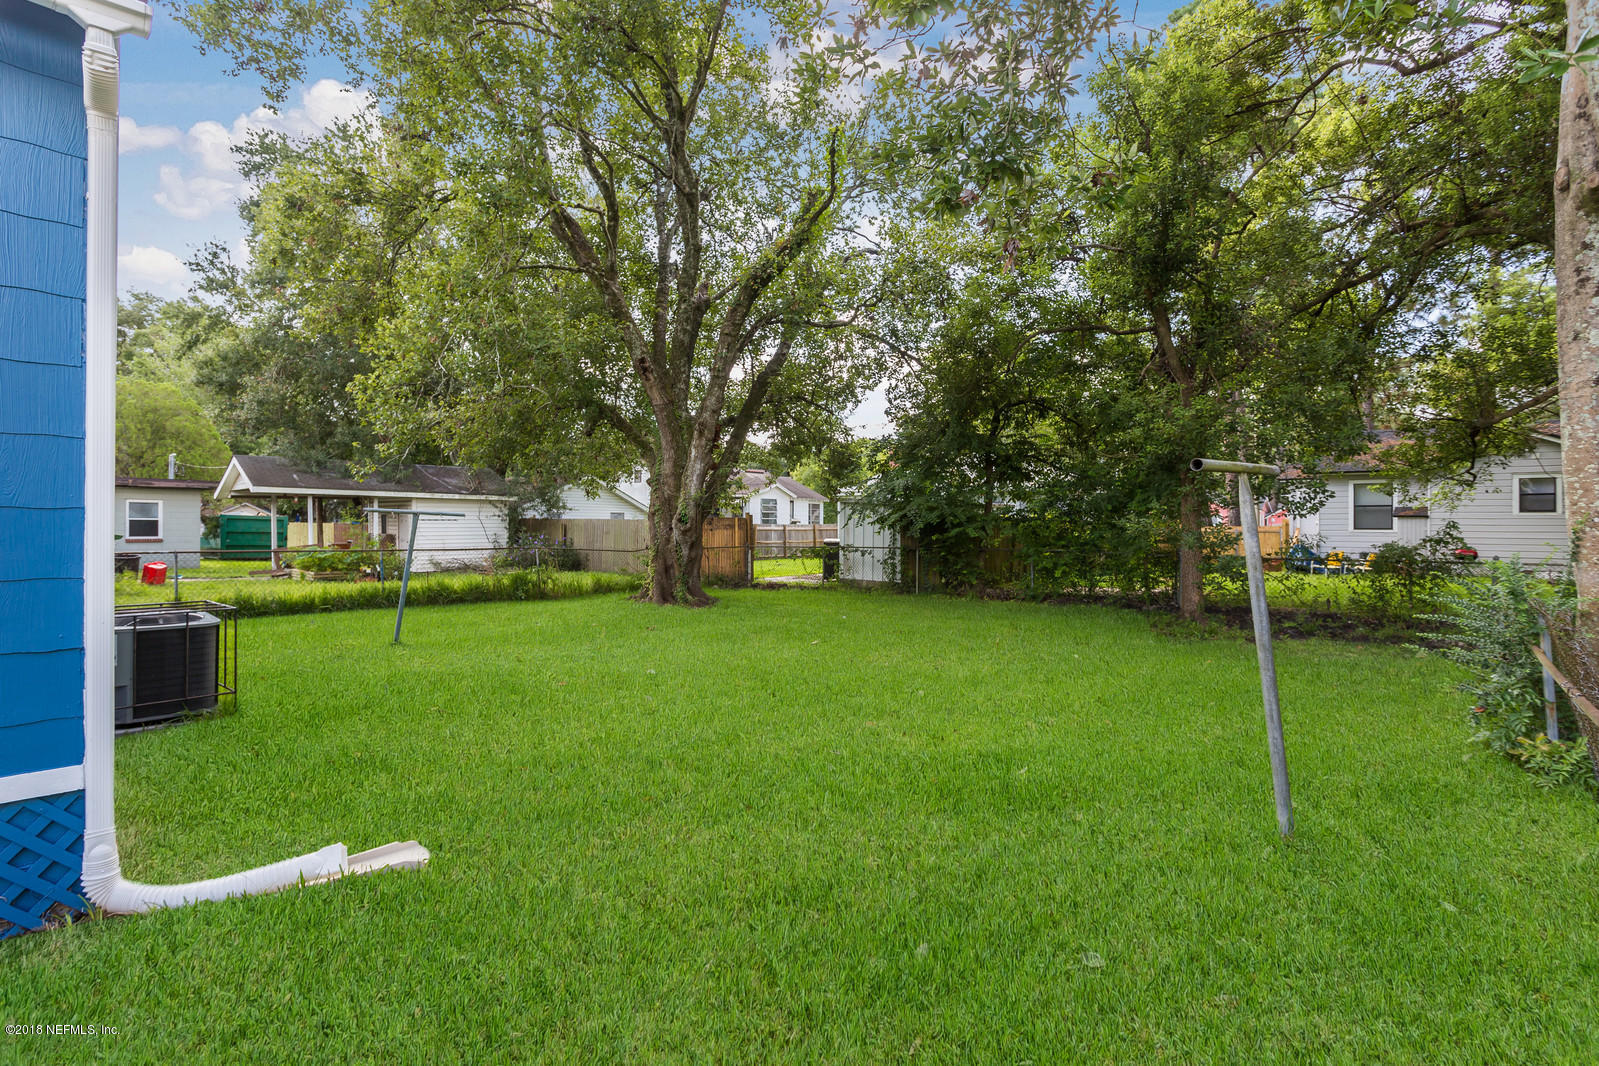 3112 GILMORE, JACKSONVILLE, FLORIDA 32205, 3 Bedrooms Bedrooms, ,1 BathroomBathrooms,Residential - single family,For sale,GILMORE,952582